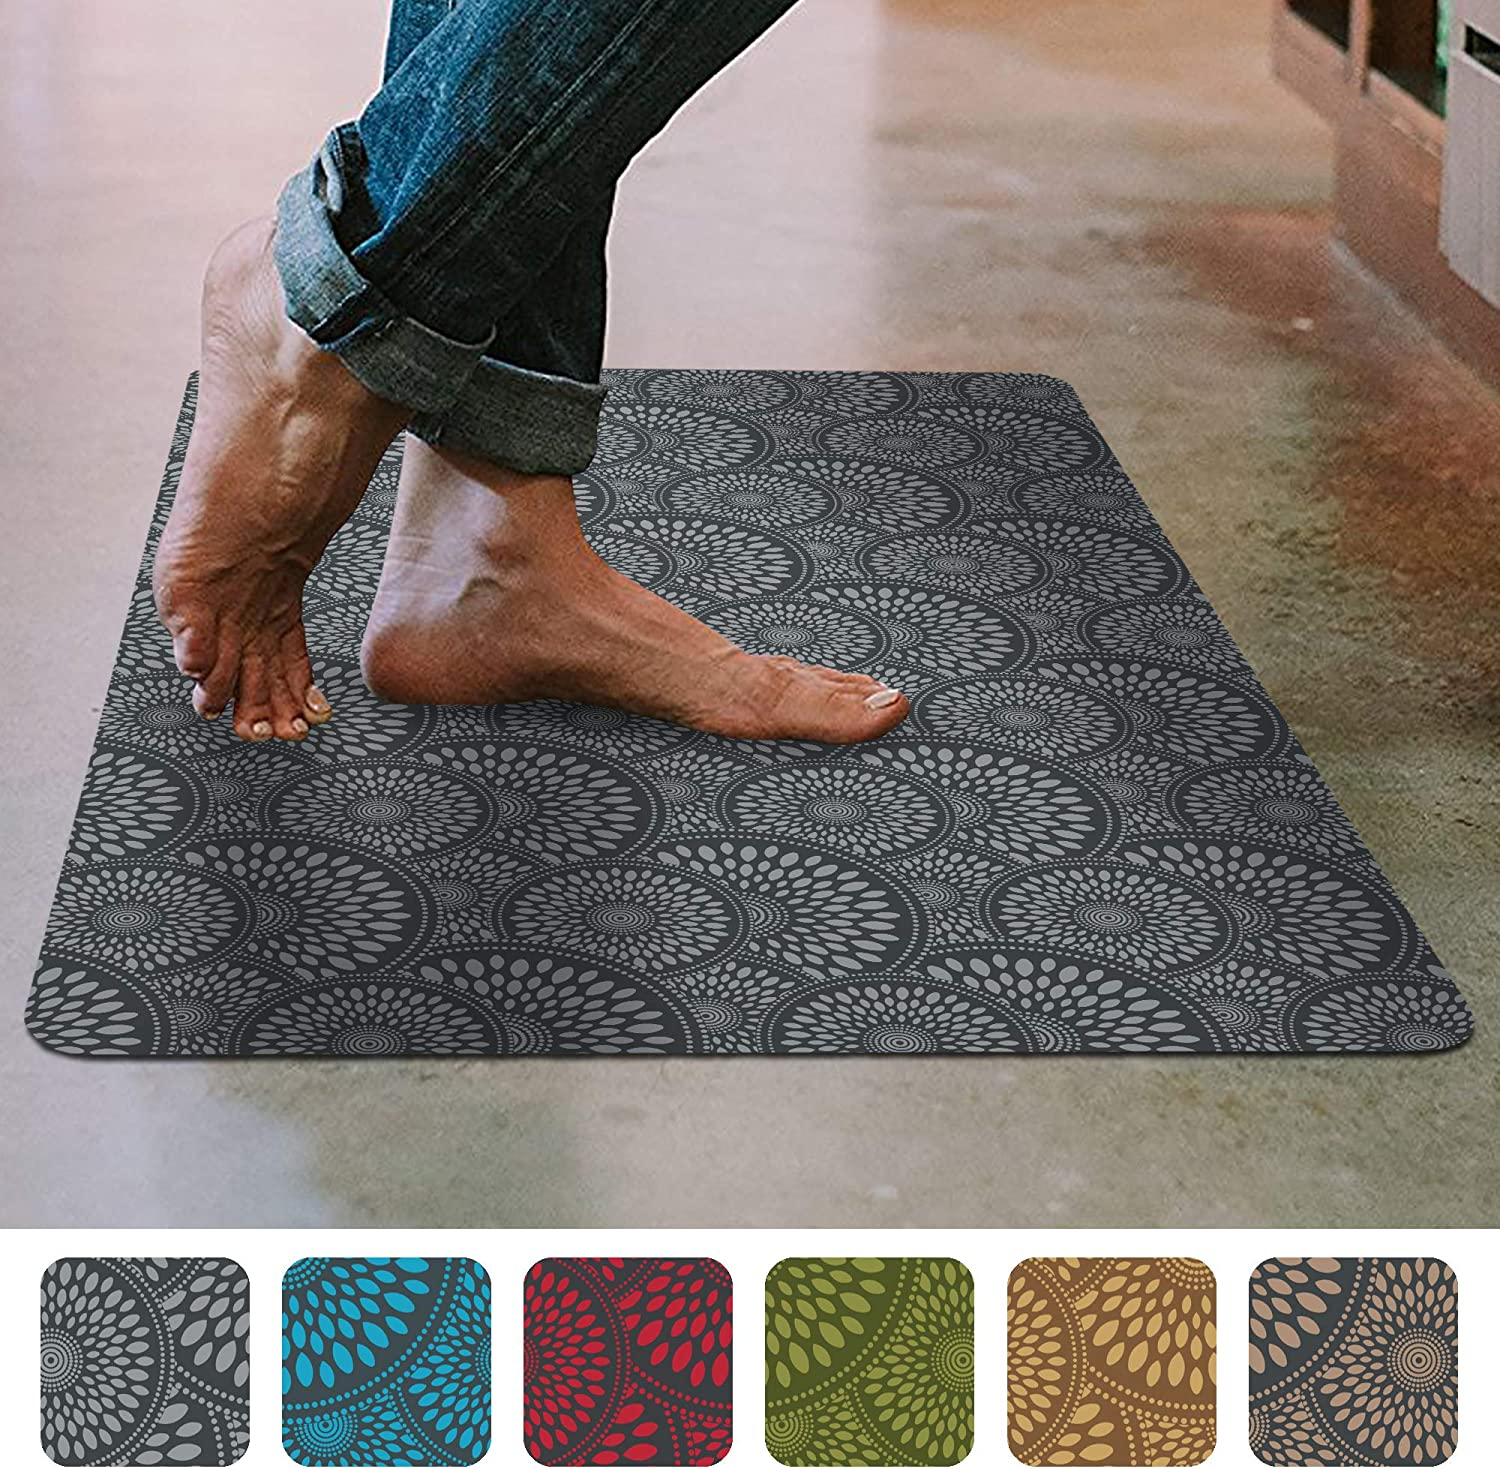 "Shape28 Floor Mat Ultra-Thin Kitchen Rug with Non Slip Rubber Backing 35""x23"", Gray"